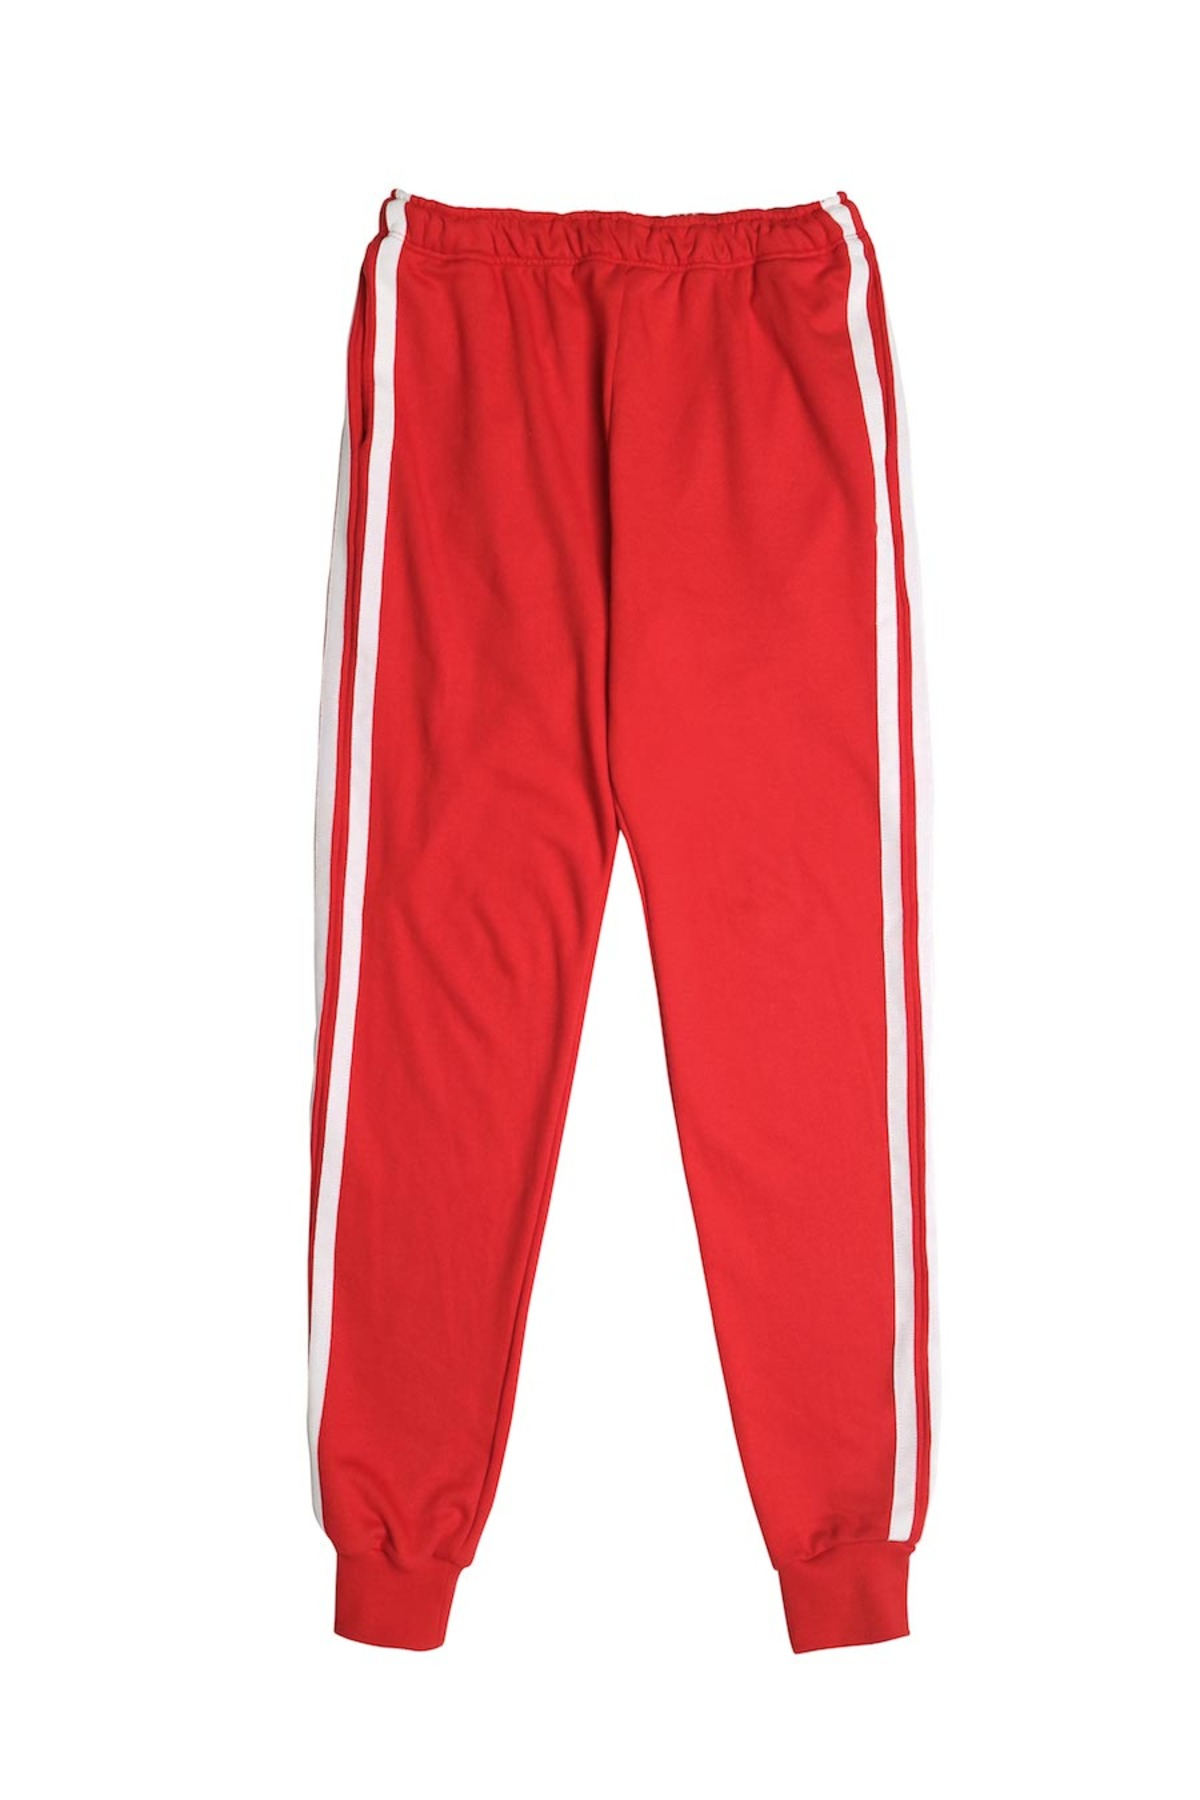 RED WHITE JOG PANTS